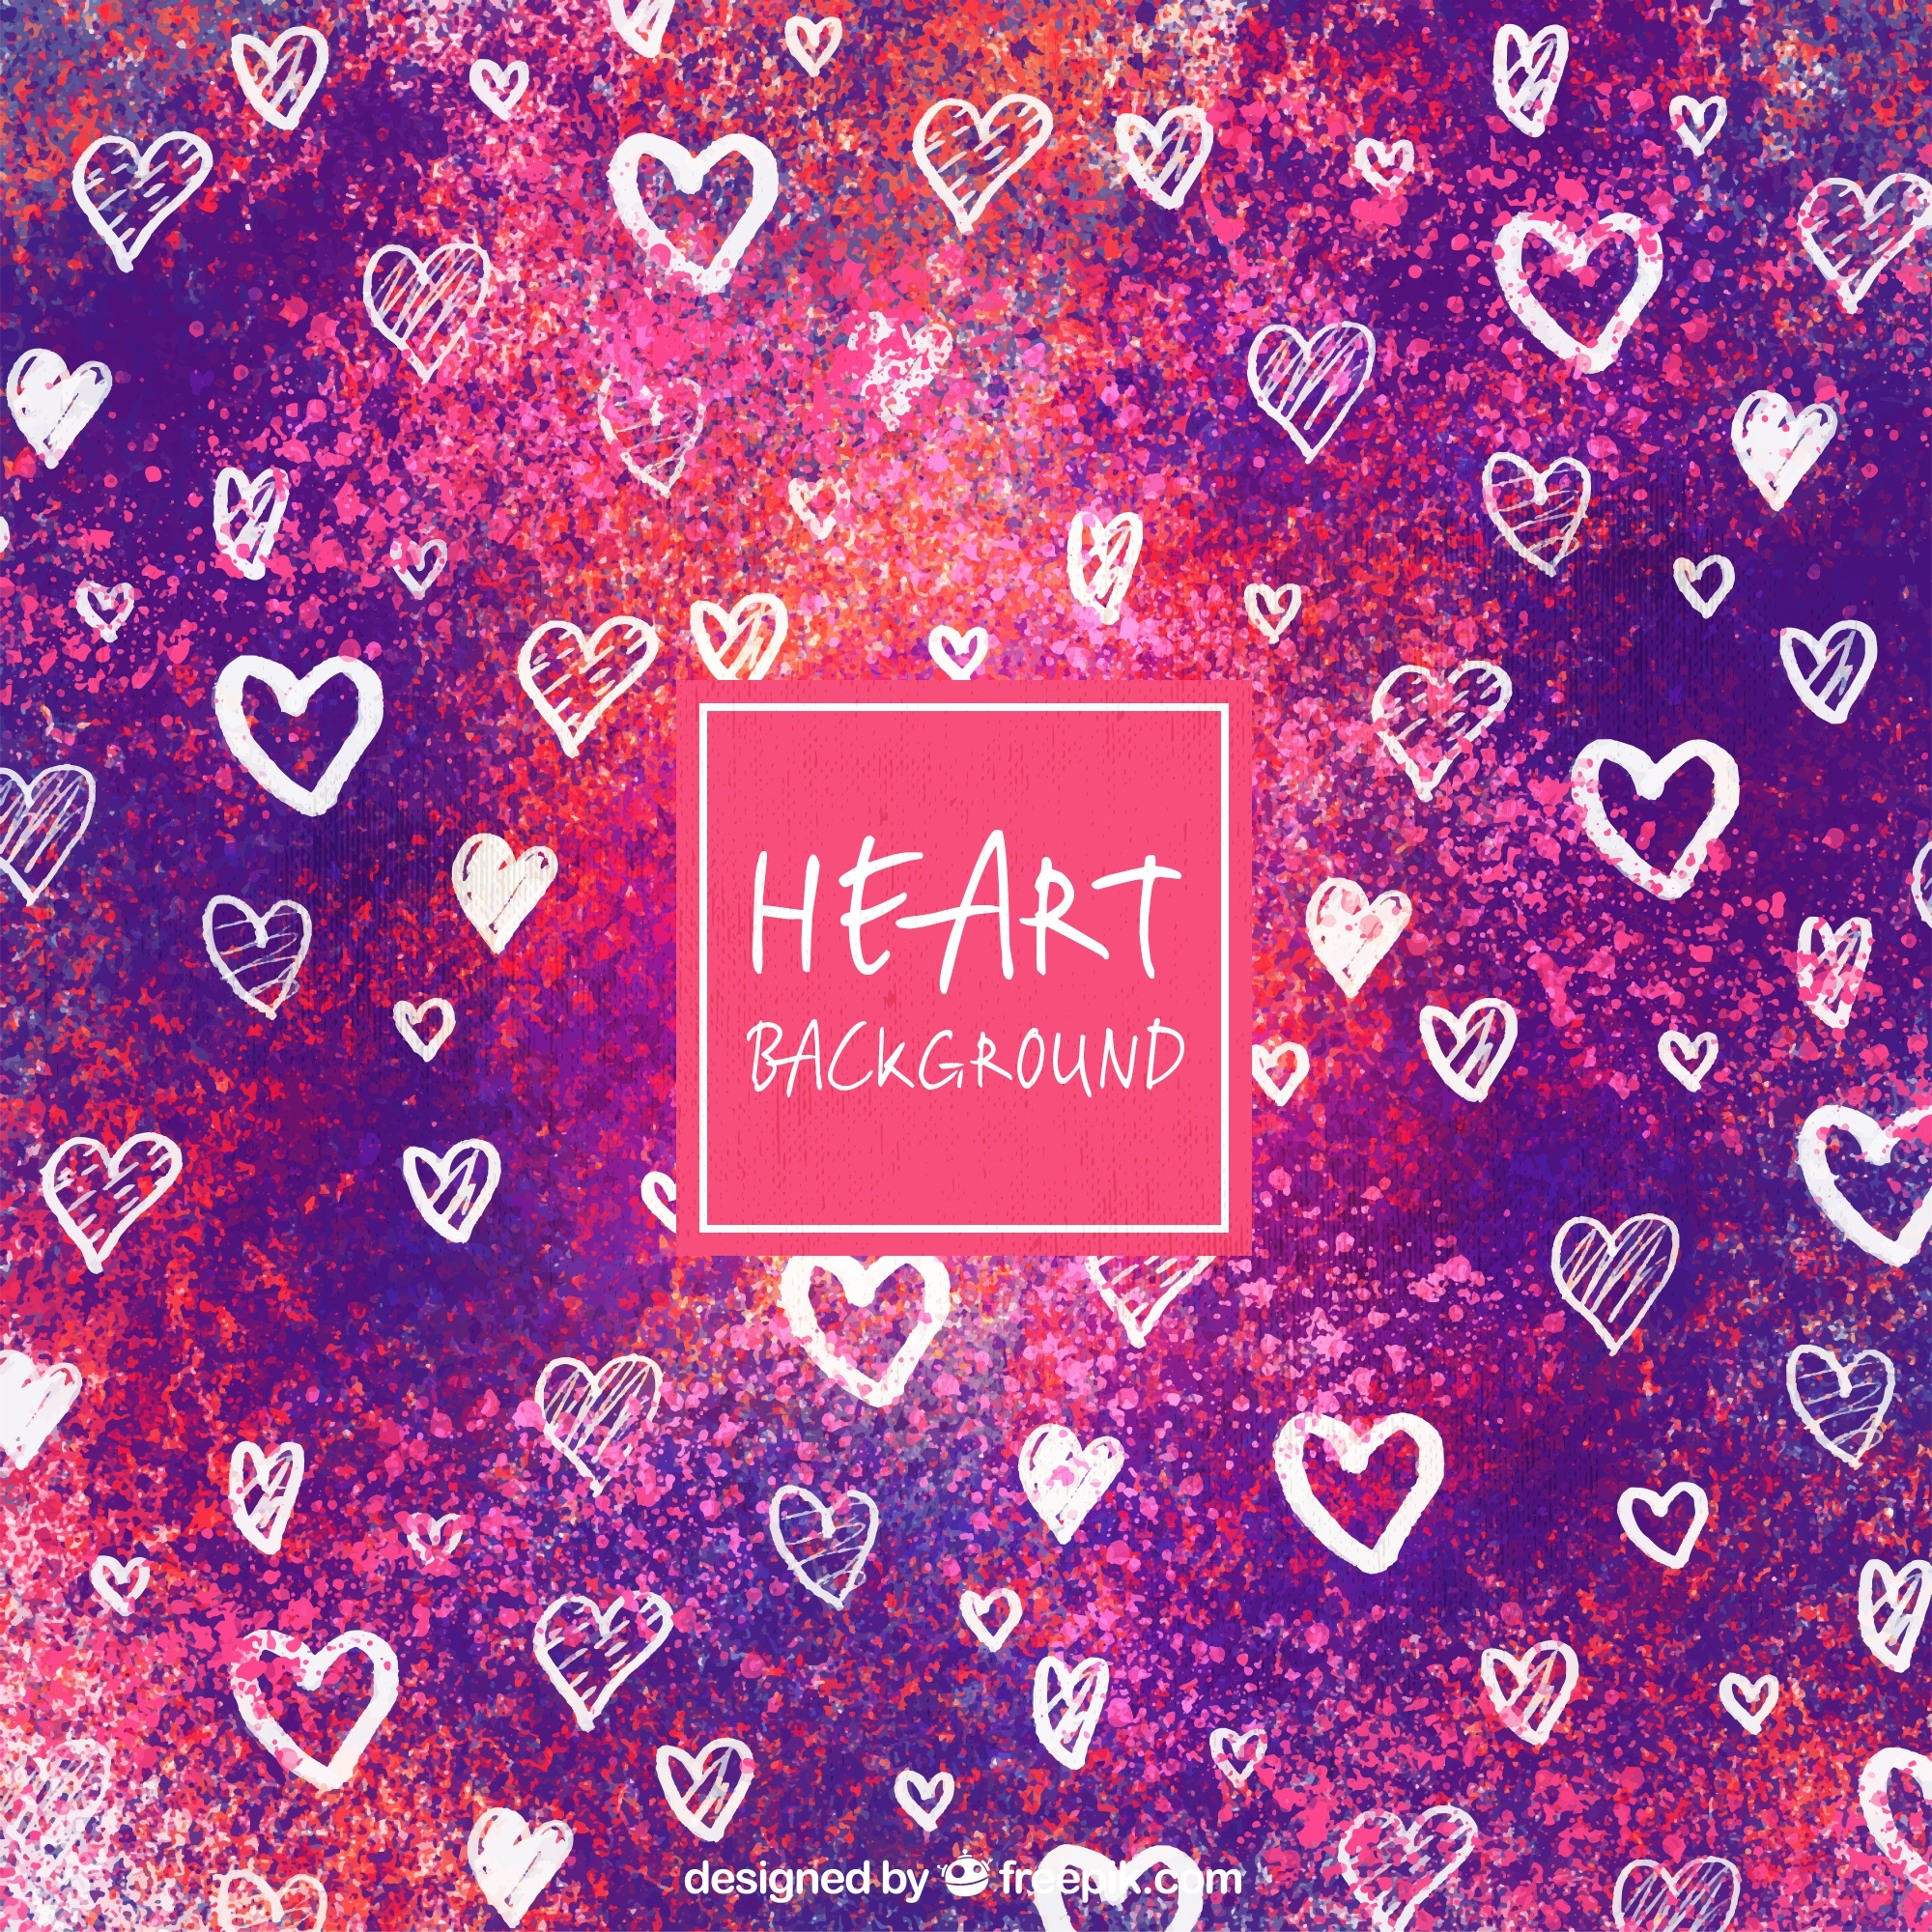 Watercolor background with drawings of hearts